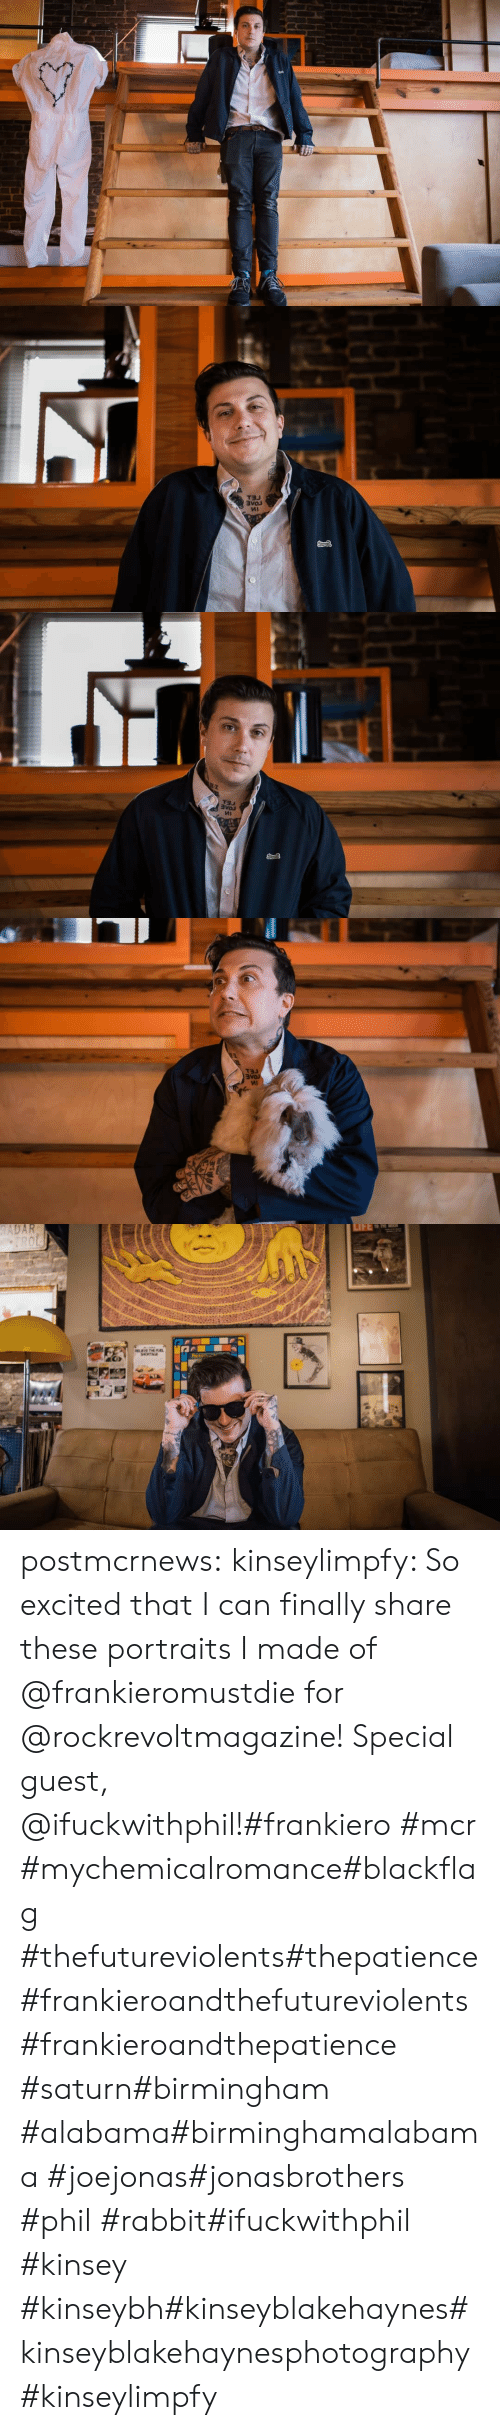 Instagram, Life, and Tumblr: VEE   и   RADAR  TROL  LIFE  SOTACE  TH postmcrnews:  kinseylimpfy: So excited that I can finally share these portraits I made of @frankieromustdie for @rockrevoltmagazine! Special guest, @ifuckwithphil!#frankiero #mcr #mychemicalromance#blackflag #thefutureviolents#thepatience#frankieroandthefutureviolents#frankieroandthepatience #saturn#birmingham #alabama#birminghamalabama #joejonas#jonasbrothers #phil #rabbit#ifuckwithphil #kinsey #kinseybh#kinseyblakehaynes#kinseyblakehaynesphotography#kinseylimpfy